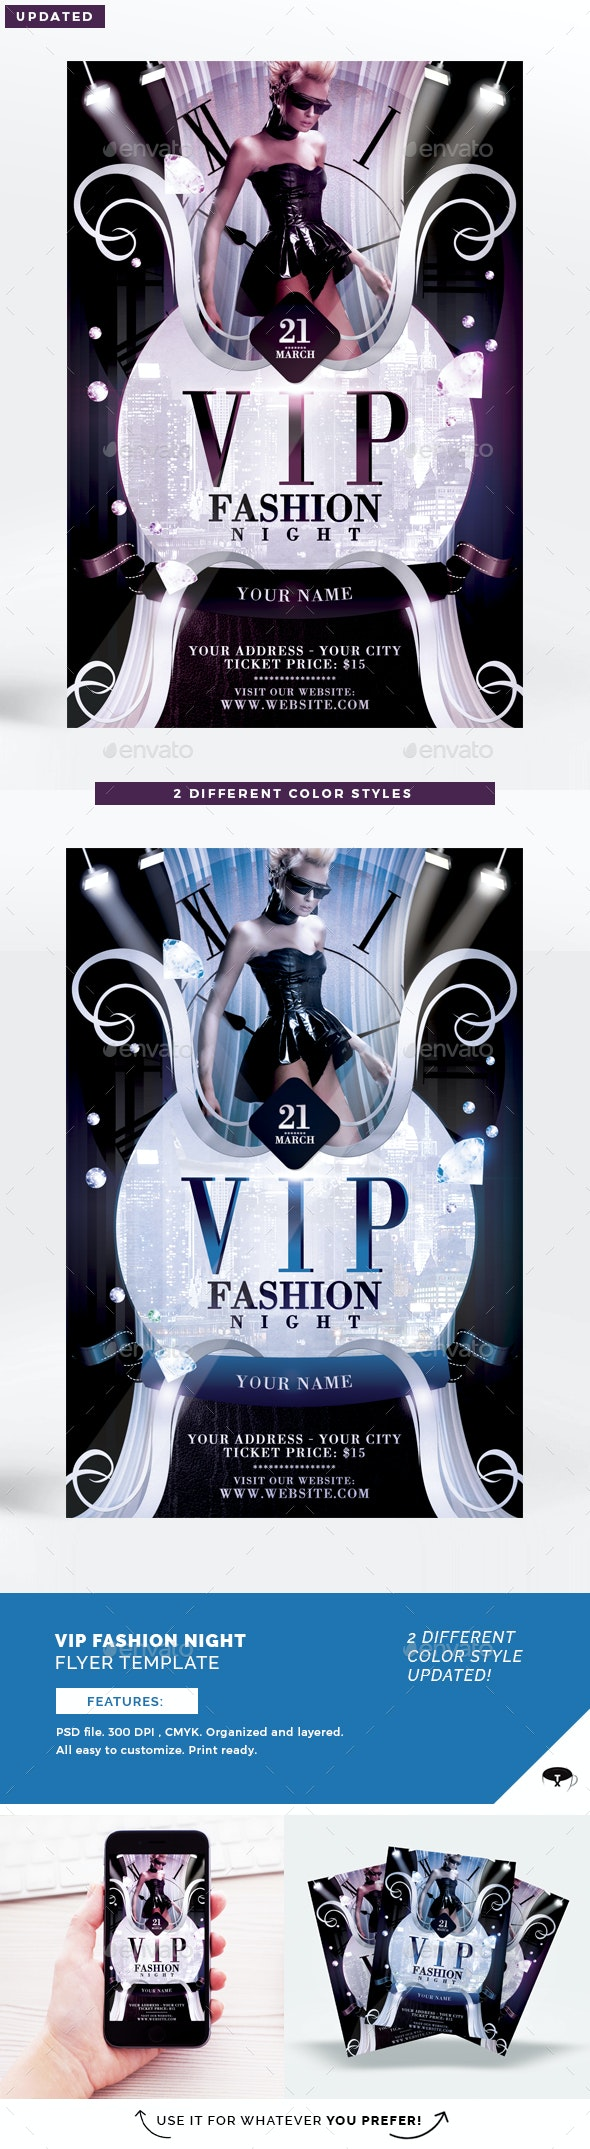 Vip Fashion Night Flyer Template - Clubs & Parties Events